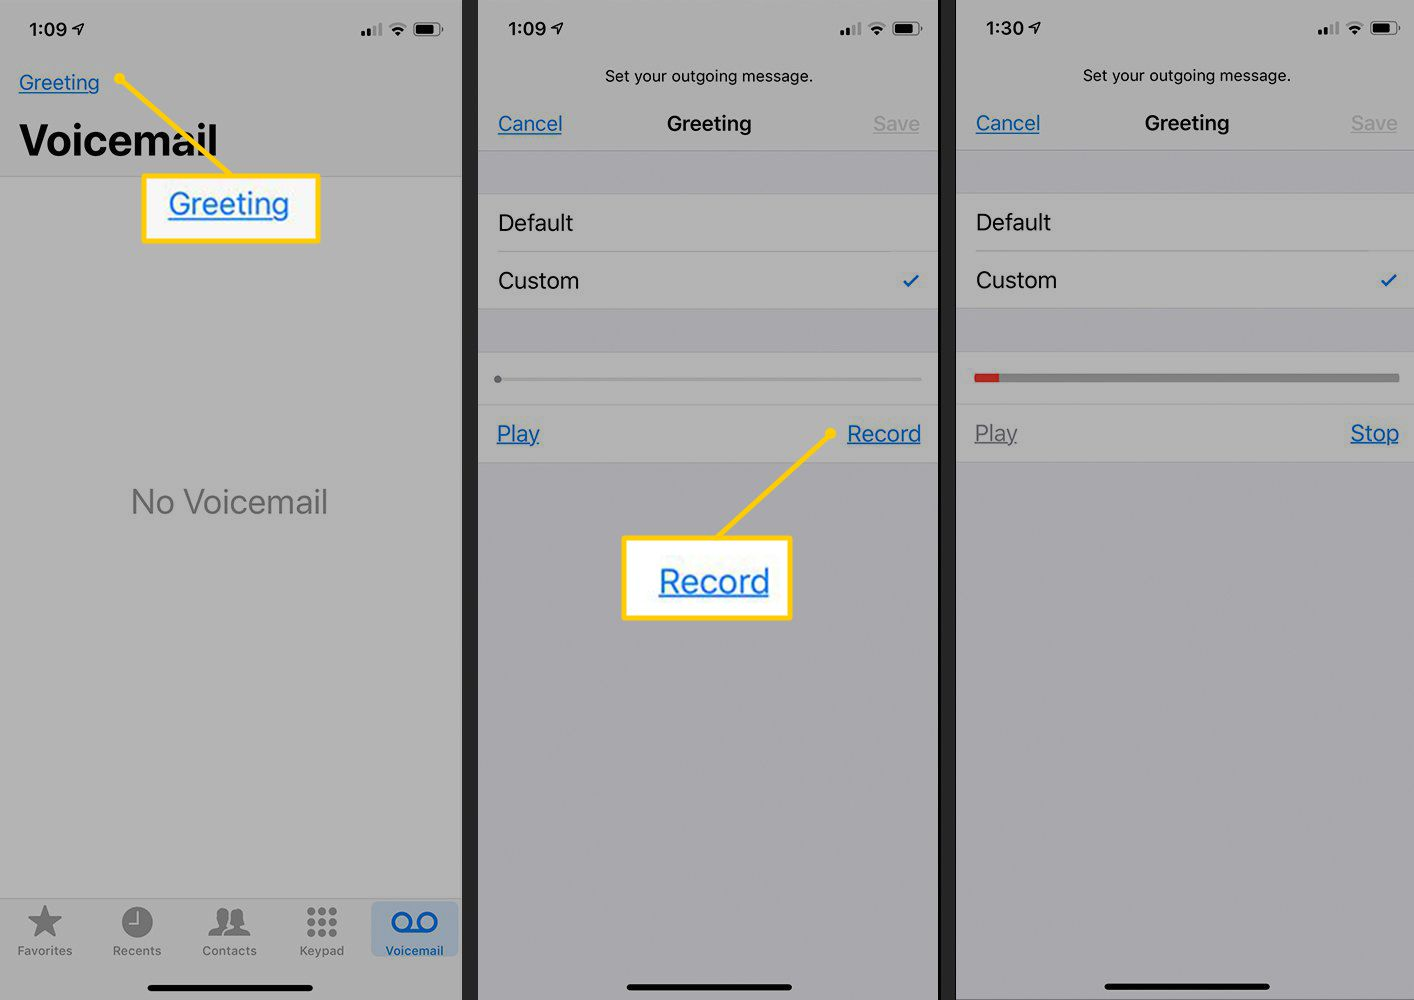 How to Record a Voicemail Greeting on iPhone